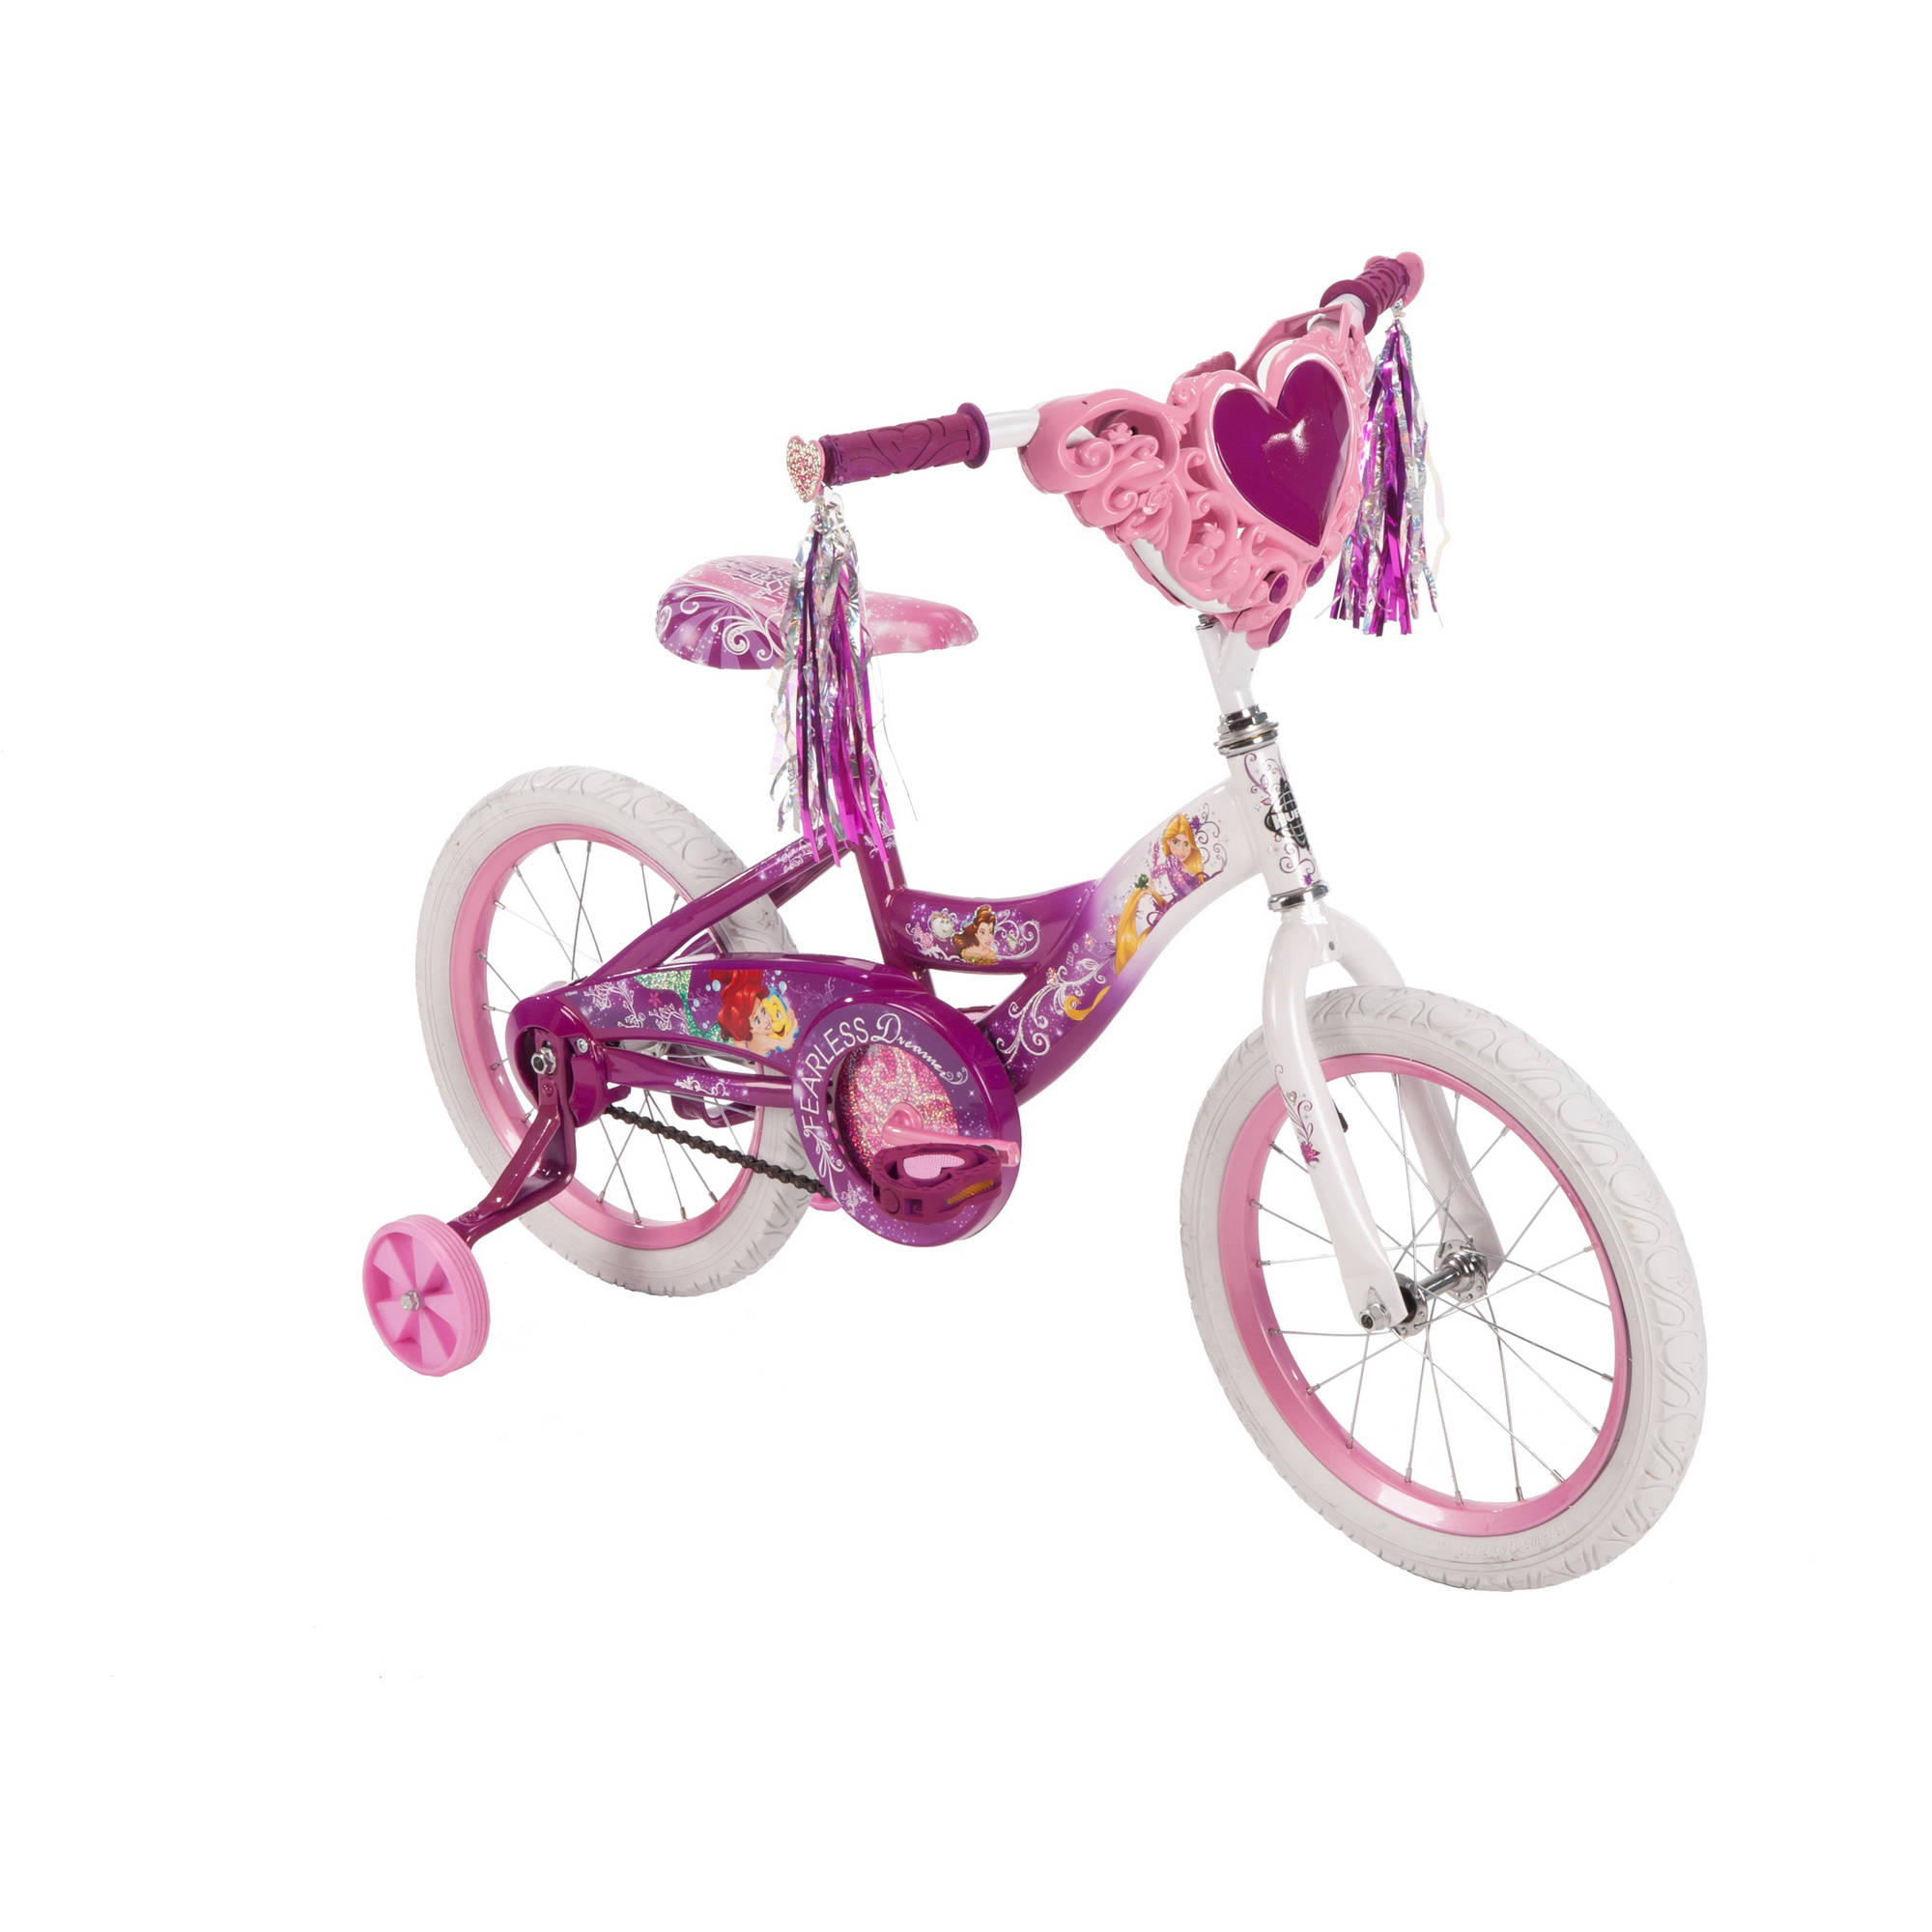 "16"" Huffy Girls' Disney Princess Bike, Heart"